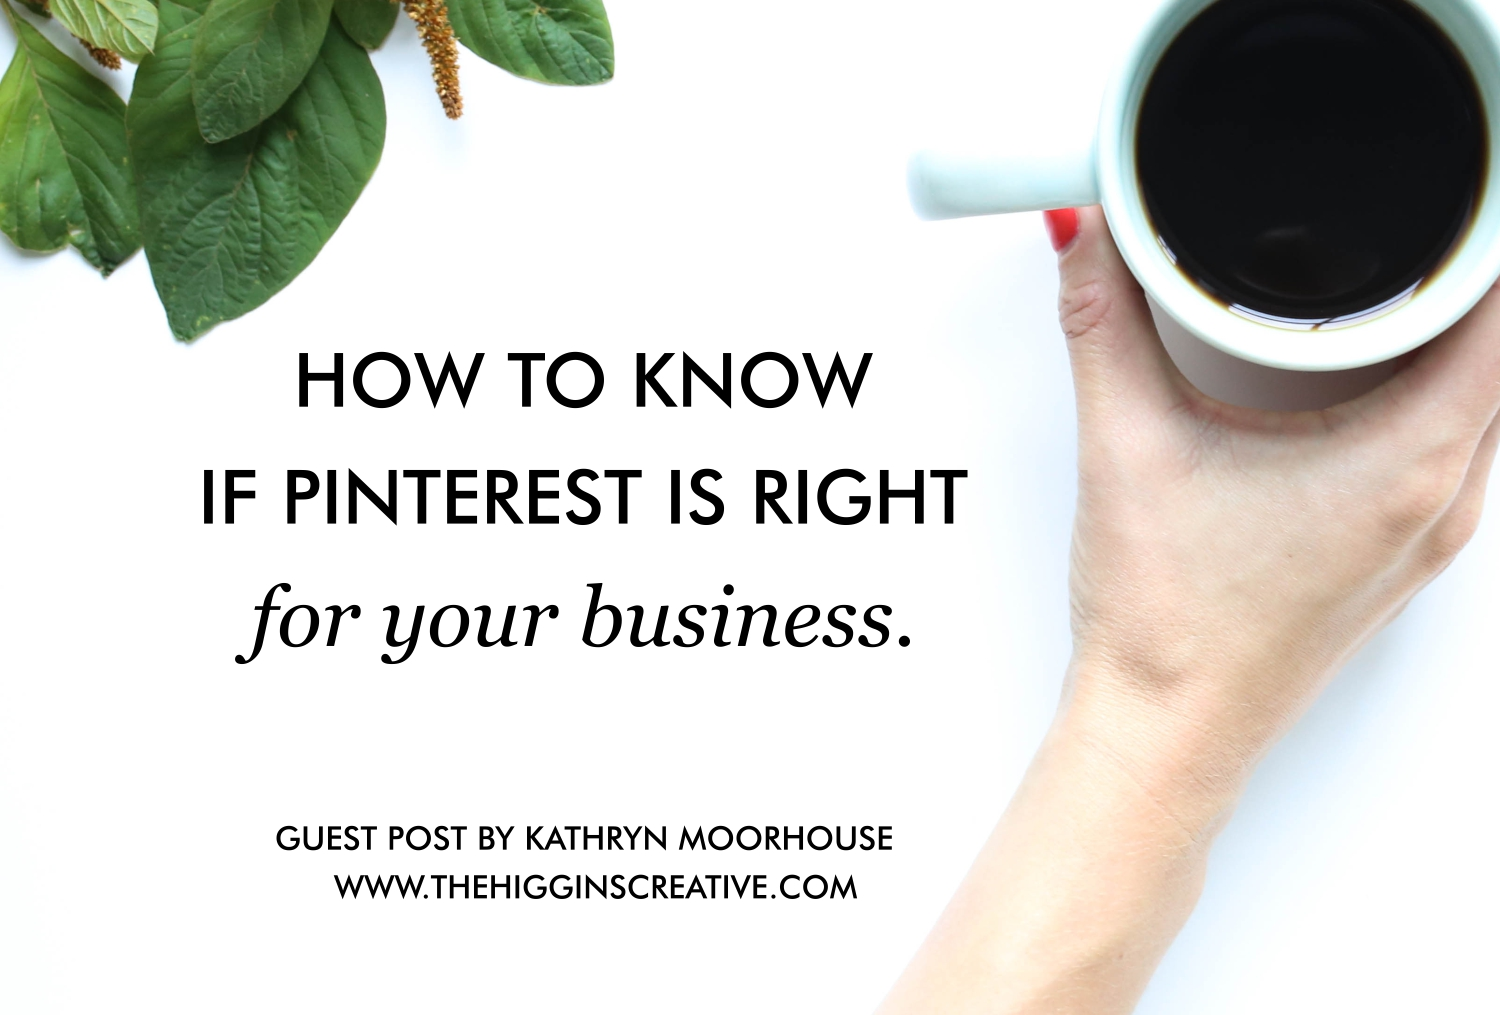 How to know if Pinterest is right for your business by Kathryn Moorhouse on The Higgins Creative